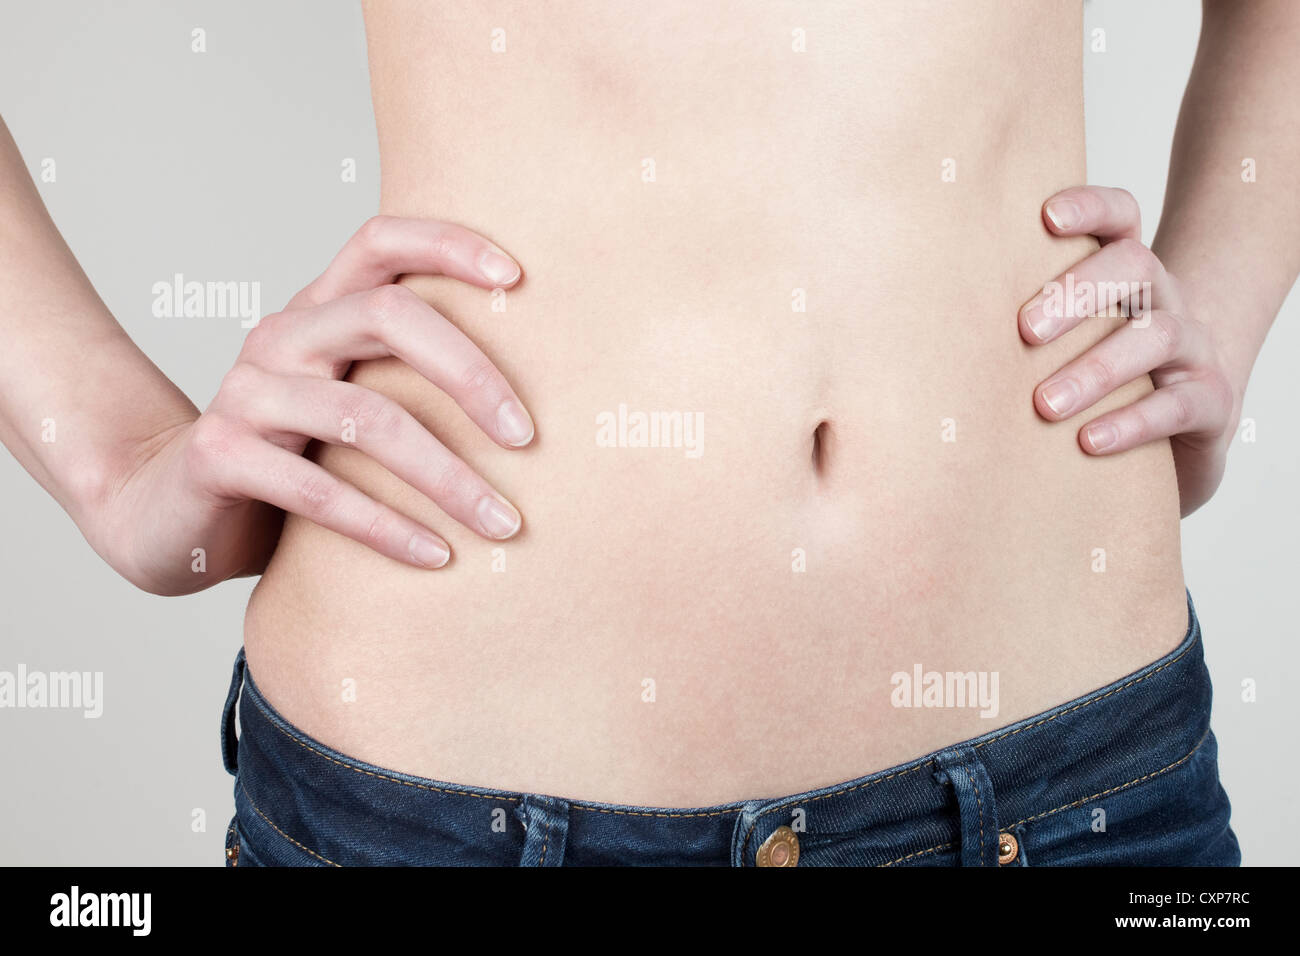 Woman's flat, thin stomach - Stock Image